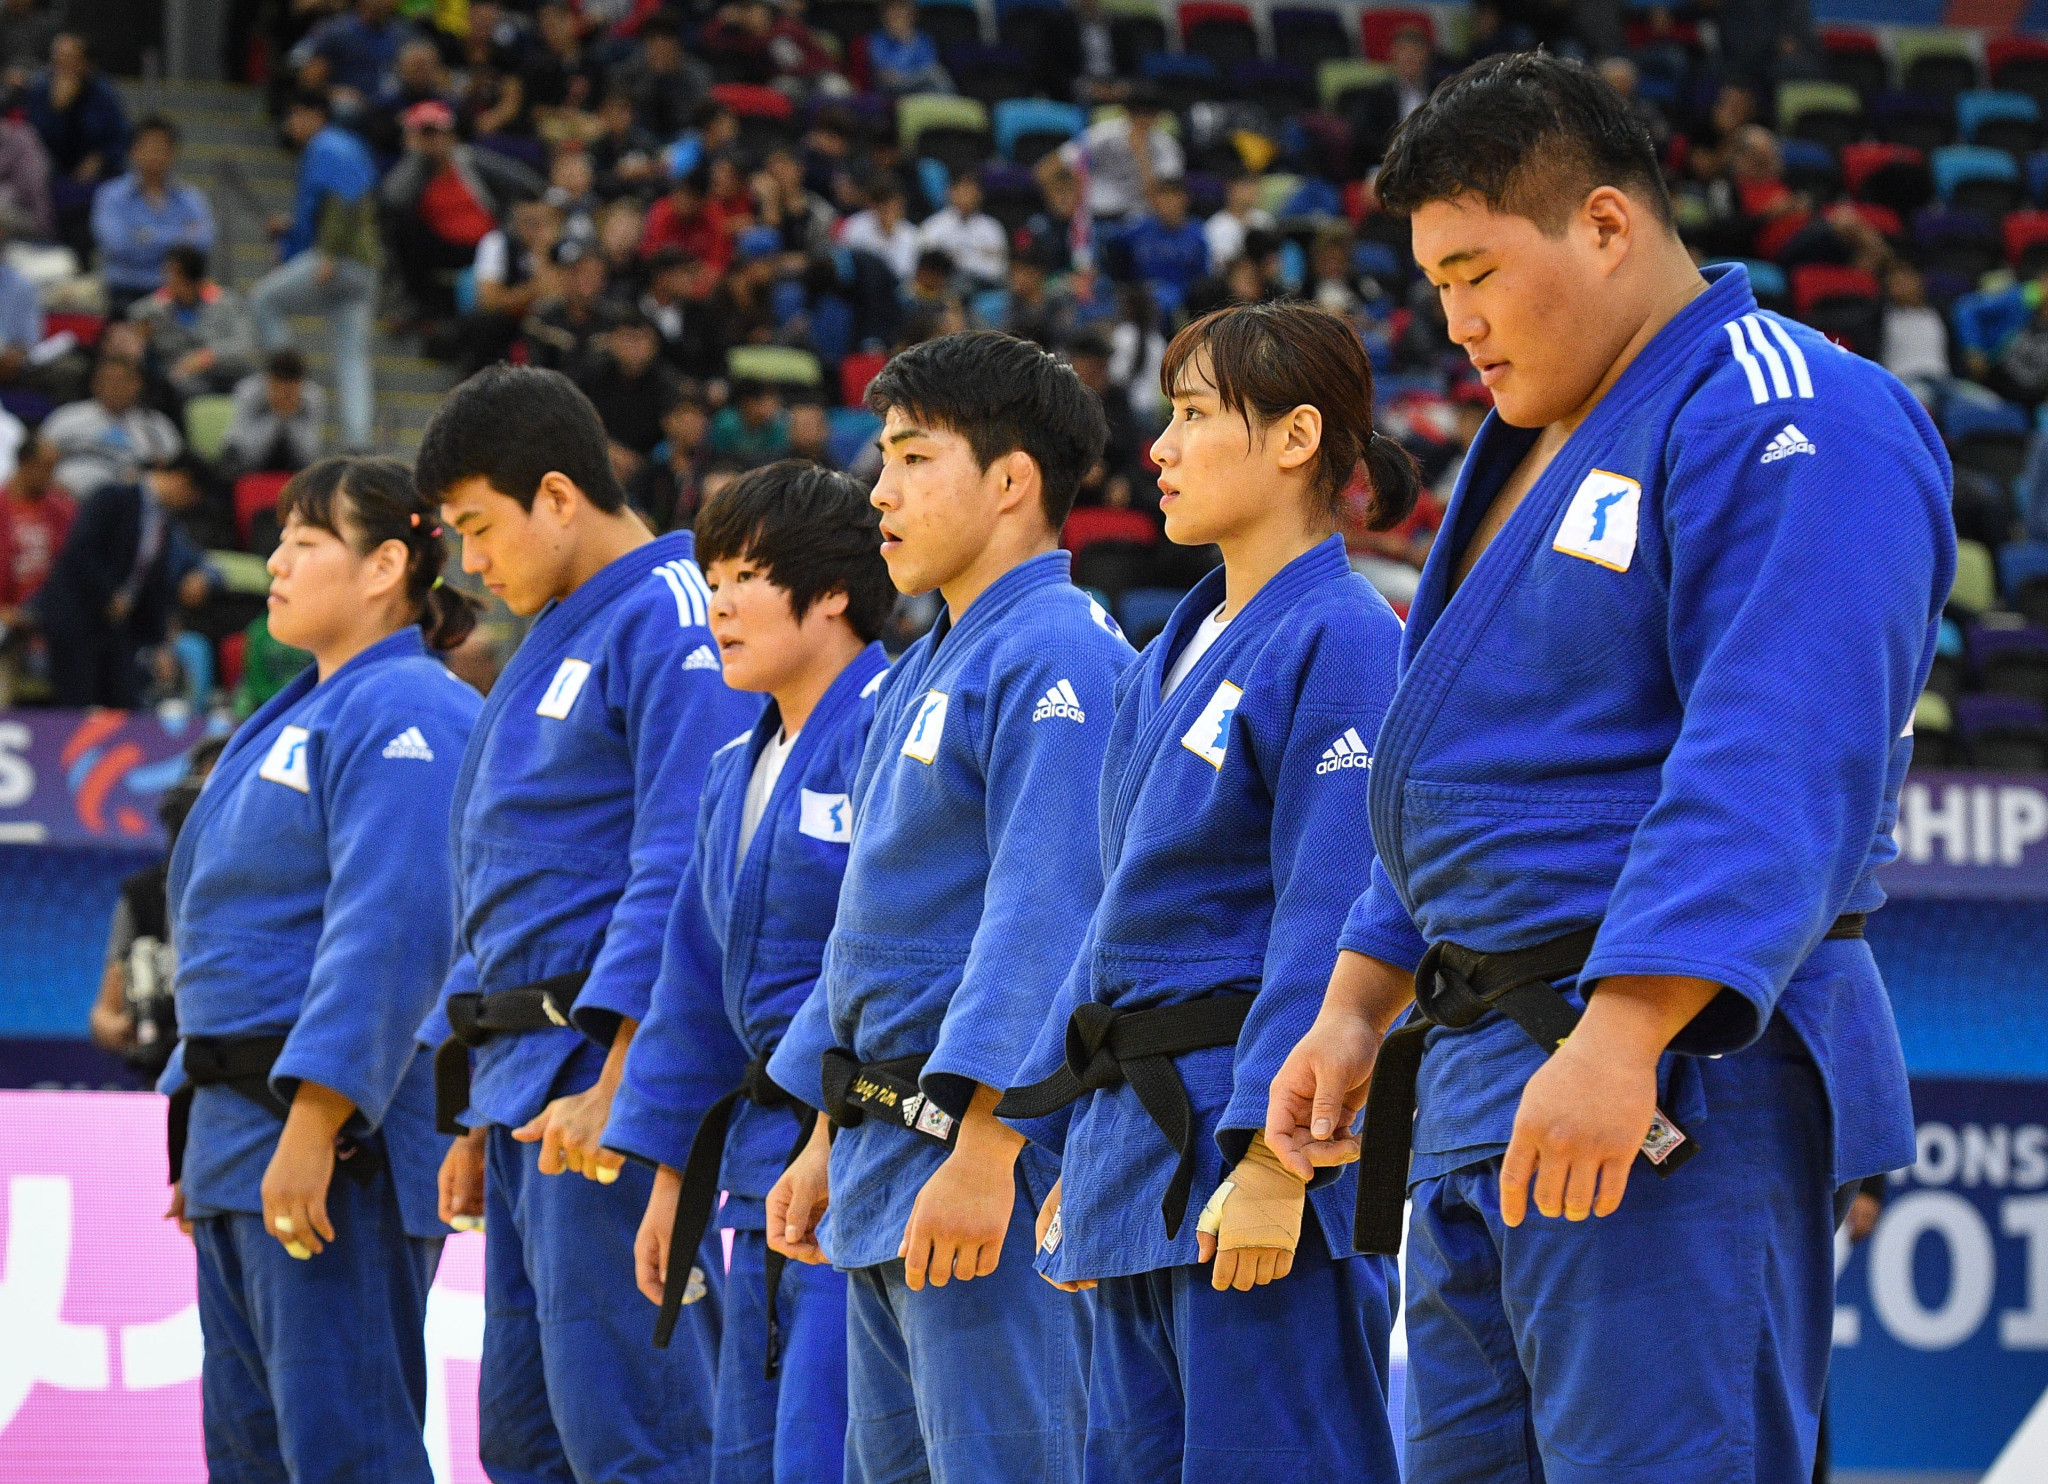 IJF announce Action Images partnership ahead of World Championships